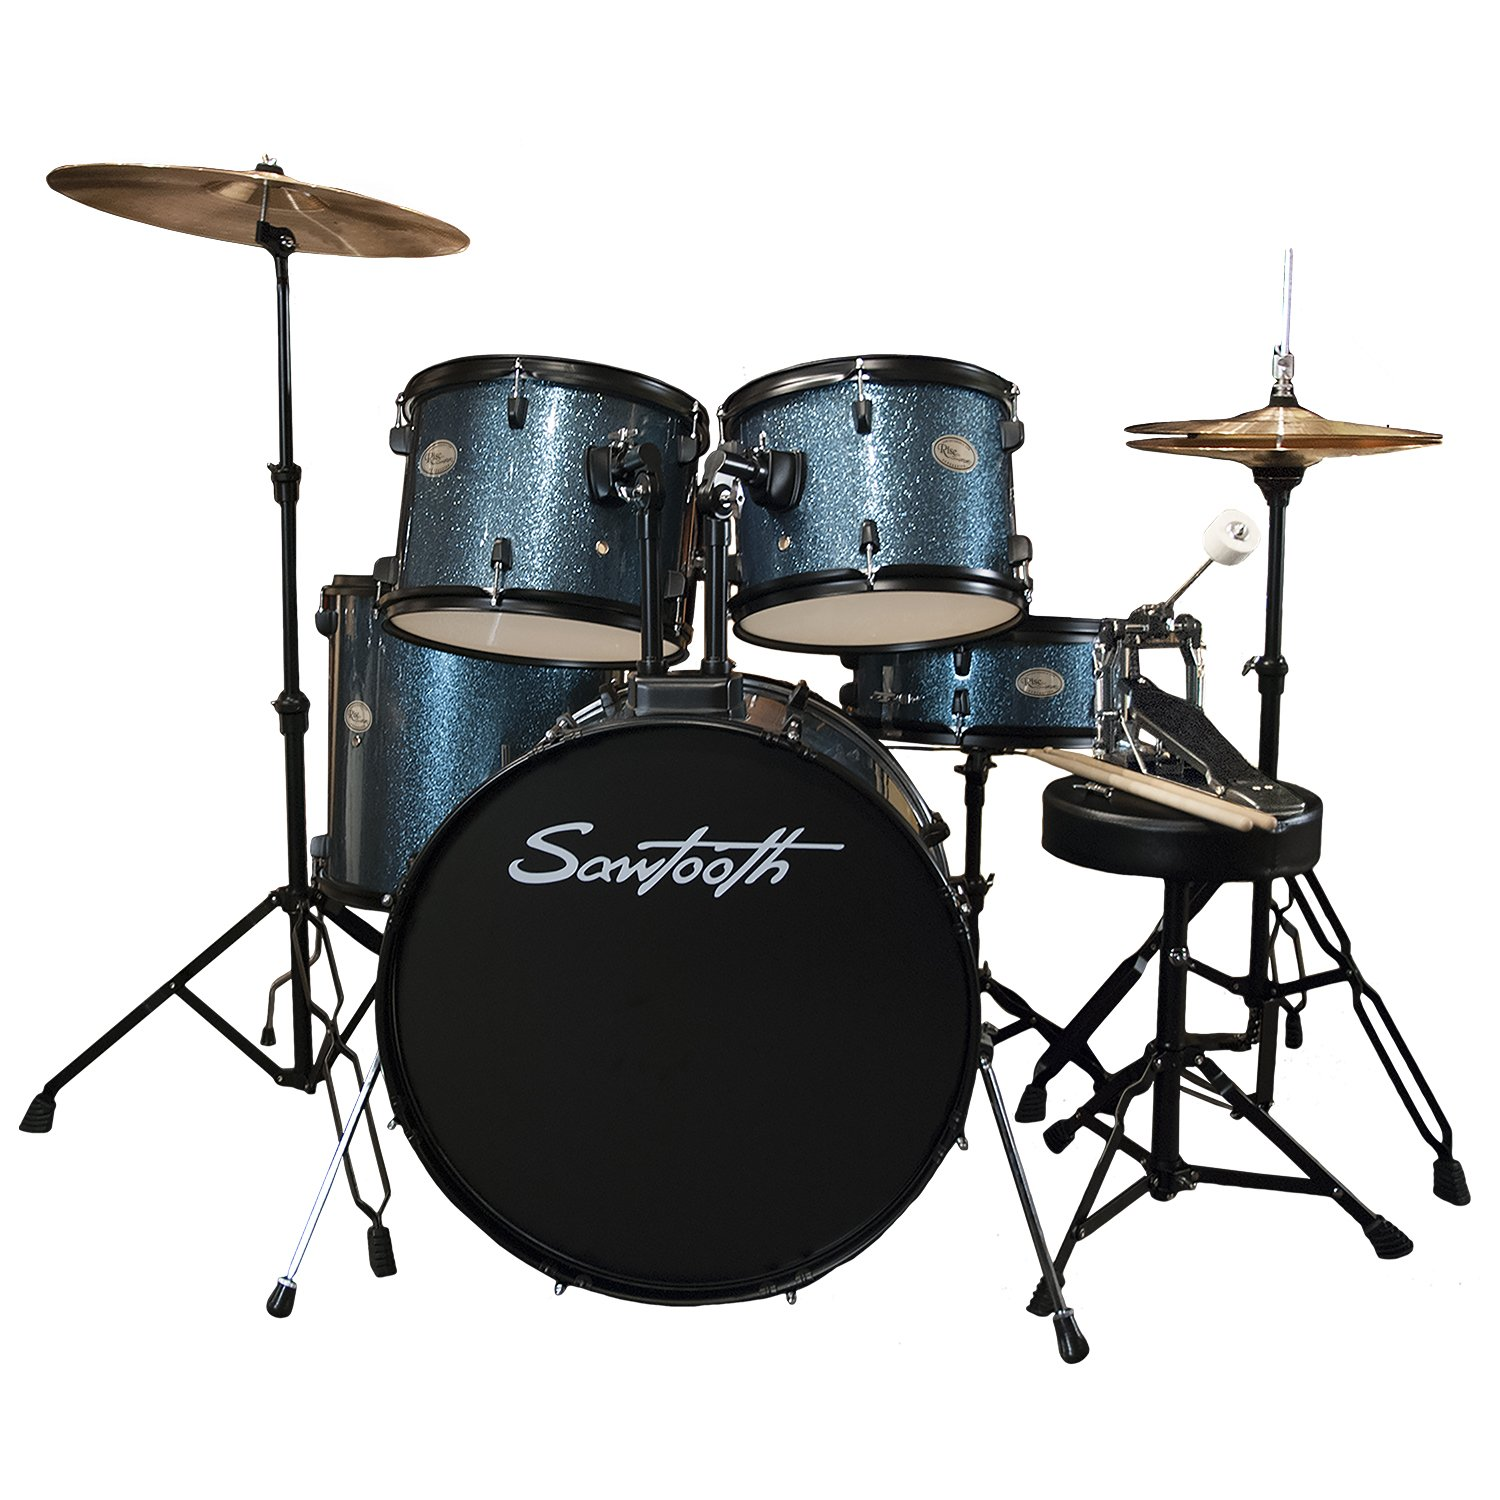 Rise Sawtooth Student Hardware Cymbals